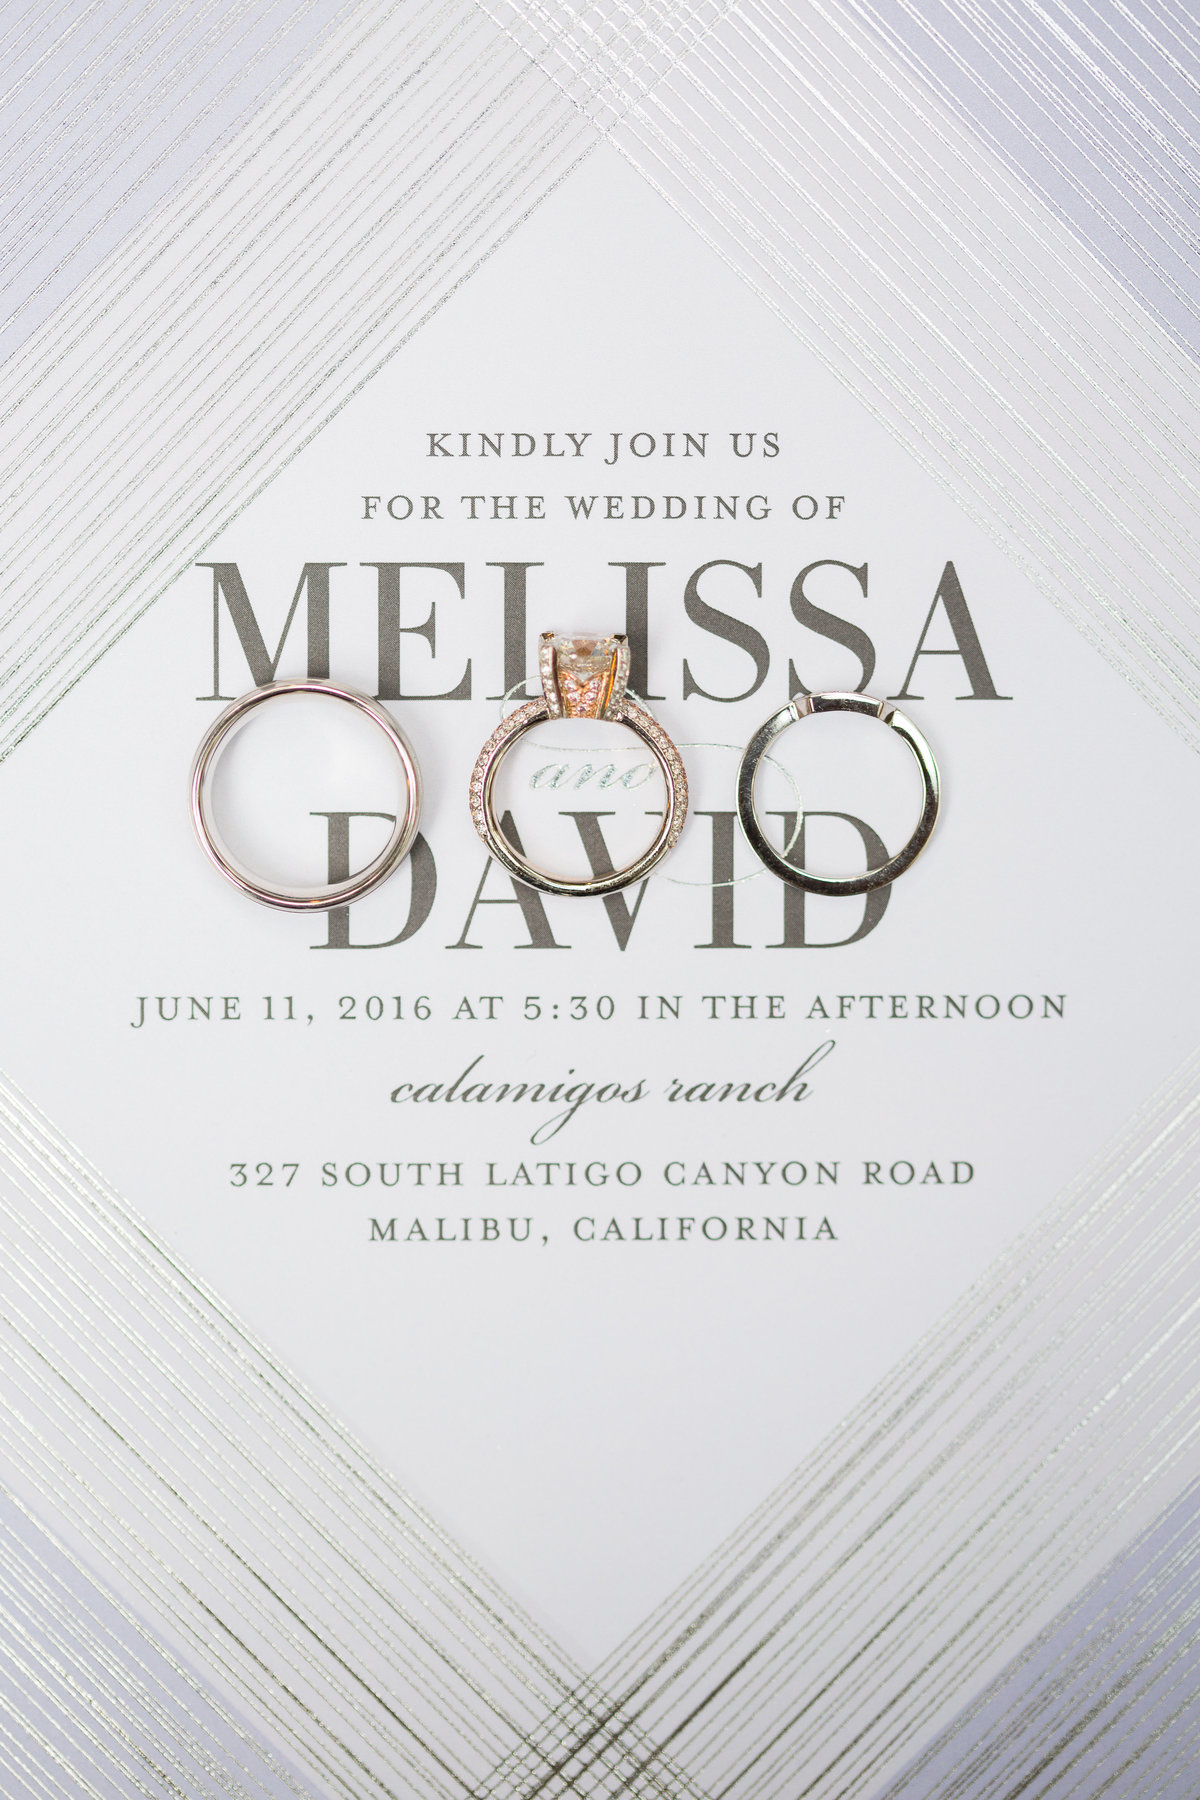 david_melissa_calamigos_ranch_wedding_0600